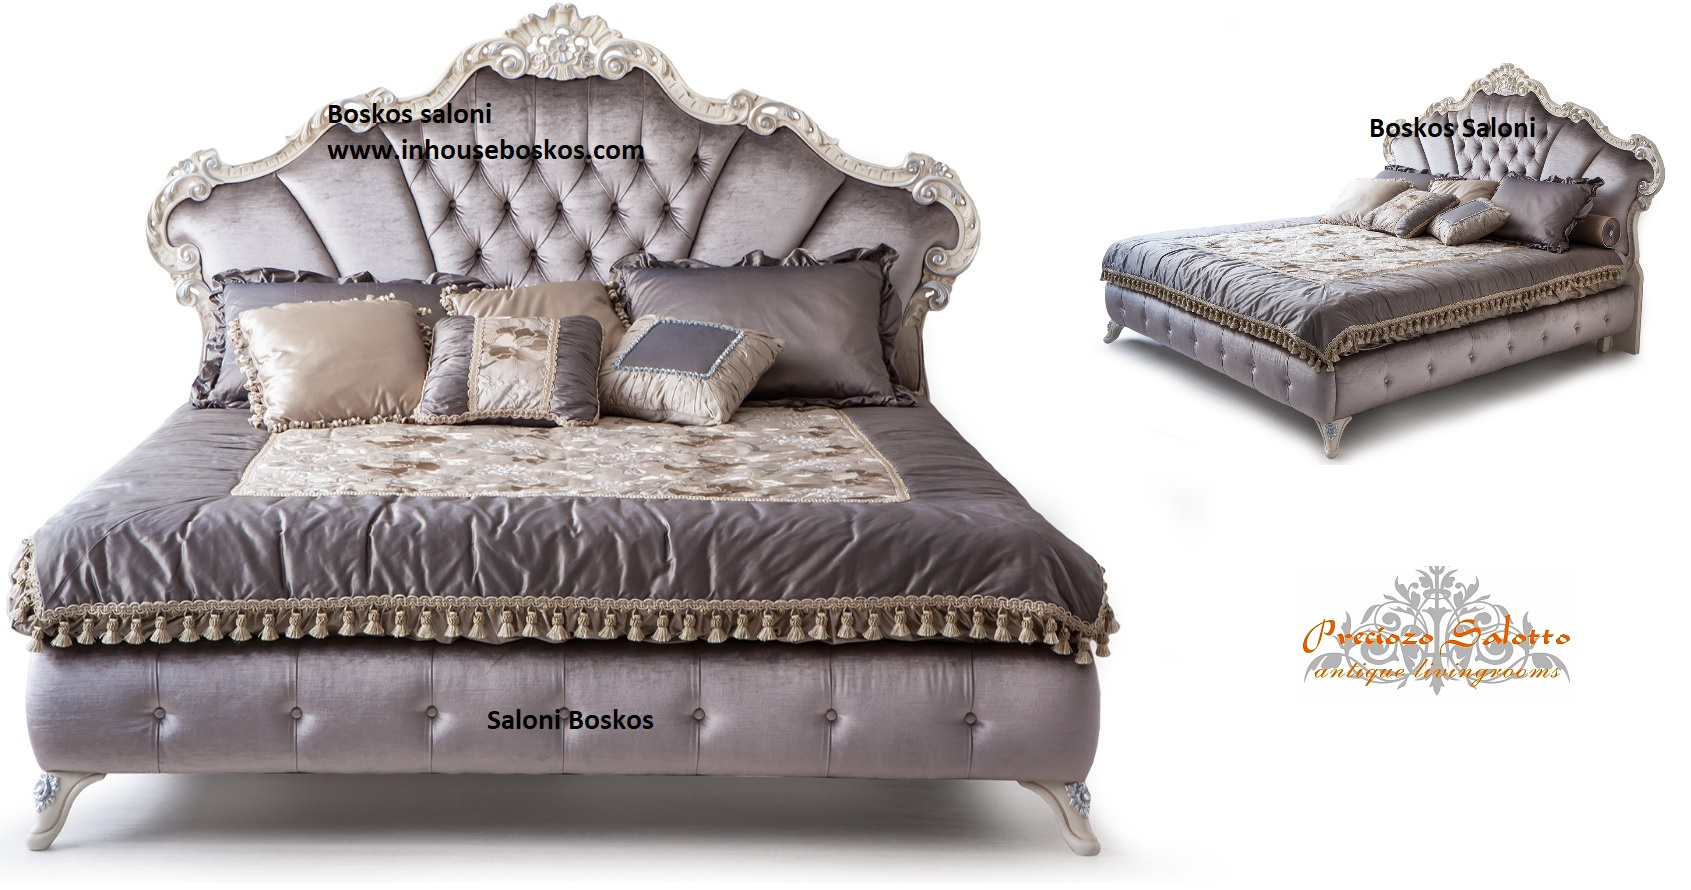 O2969LT00 LETTO QUEEN